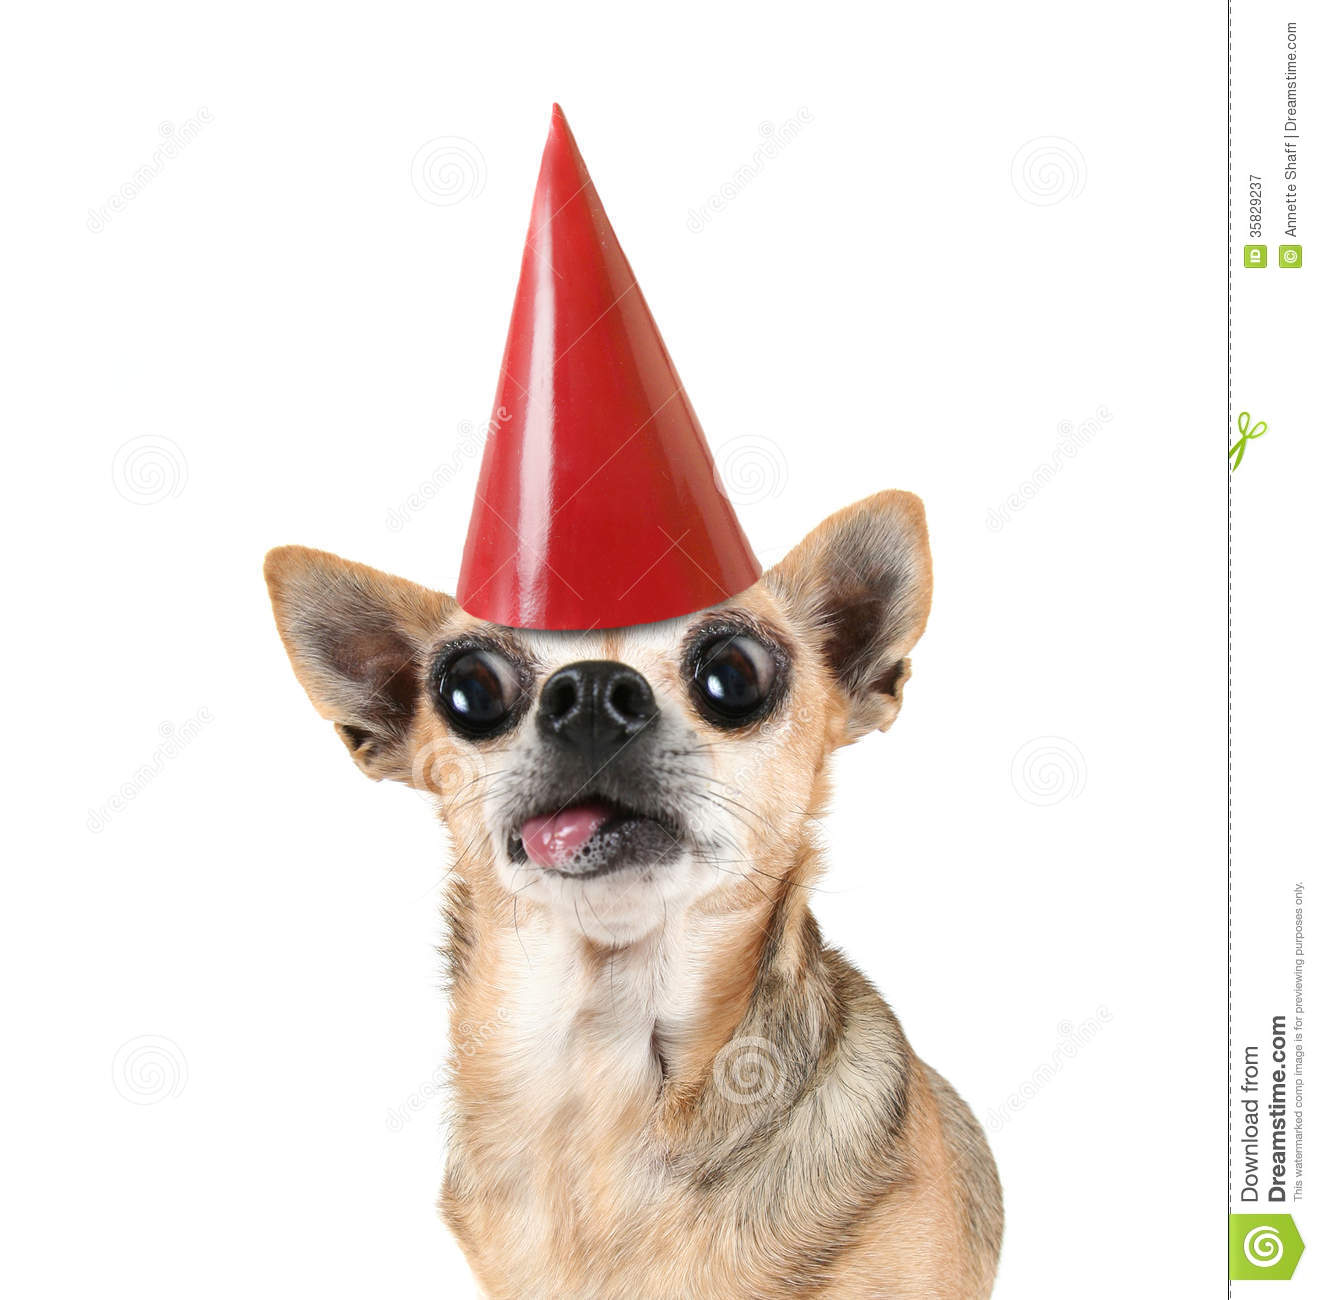 Chihuahua clipart angry chihuahua. Cilpart ingenious ideas birthday